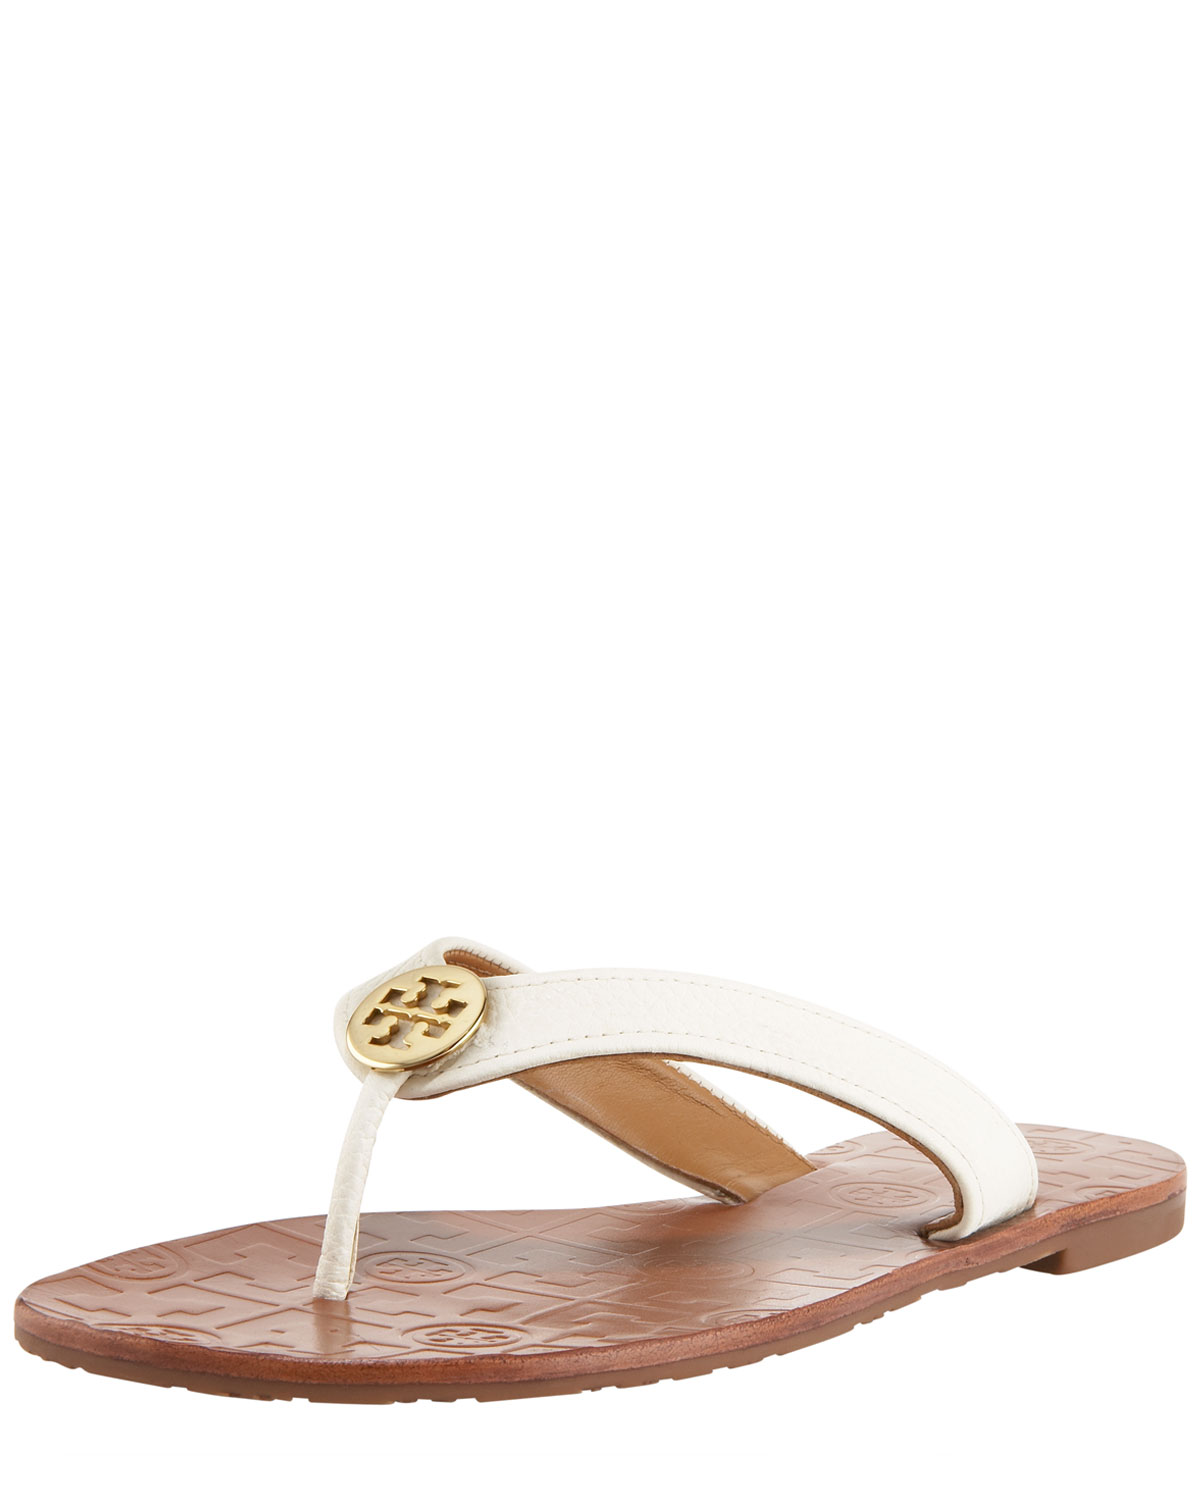 6e3d2cc081e71 Tory Burch Thora Leather Thong Sandal